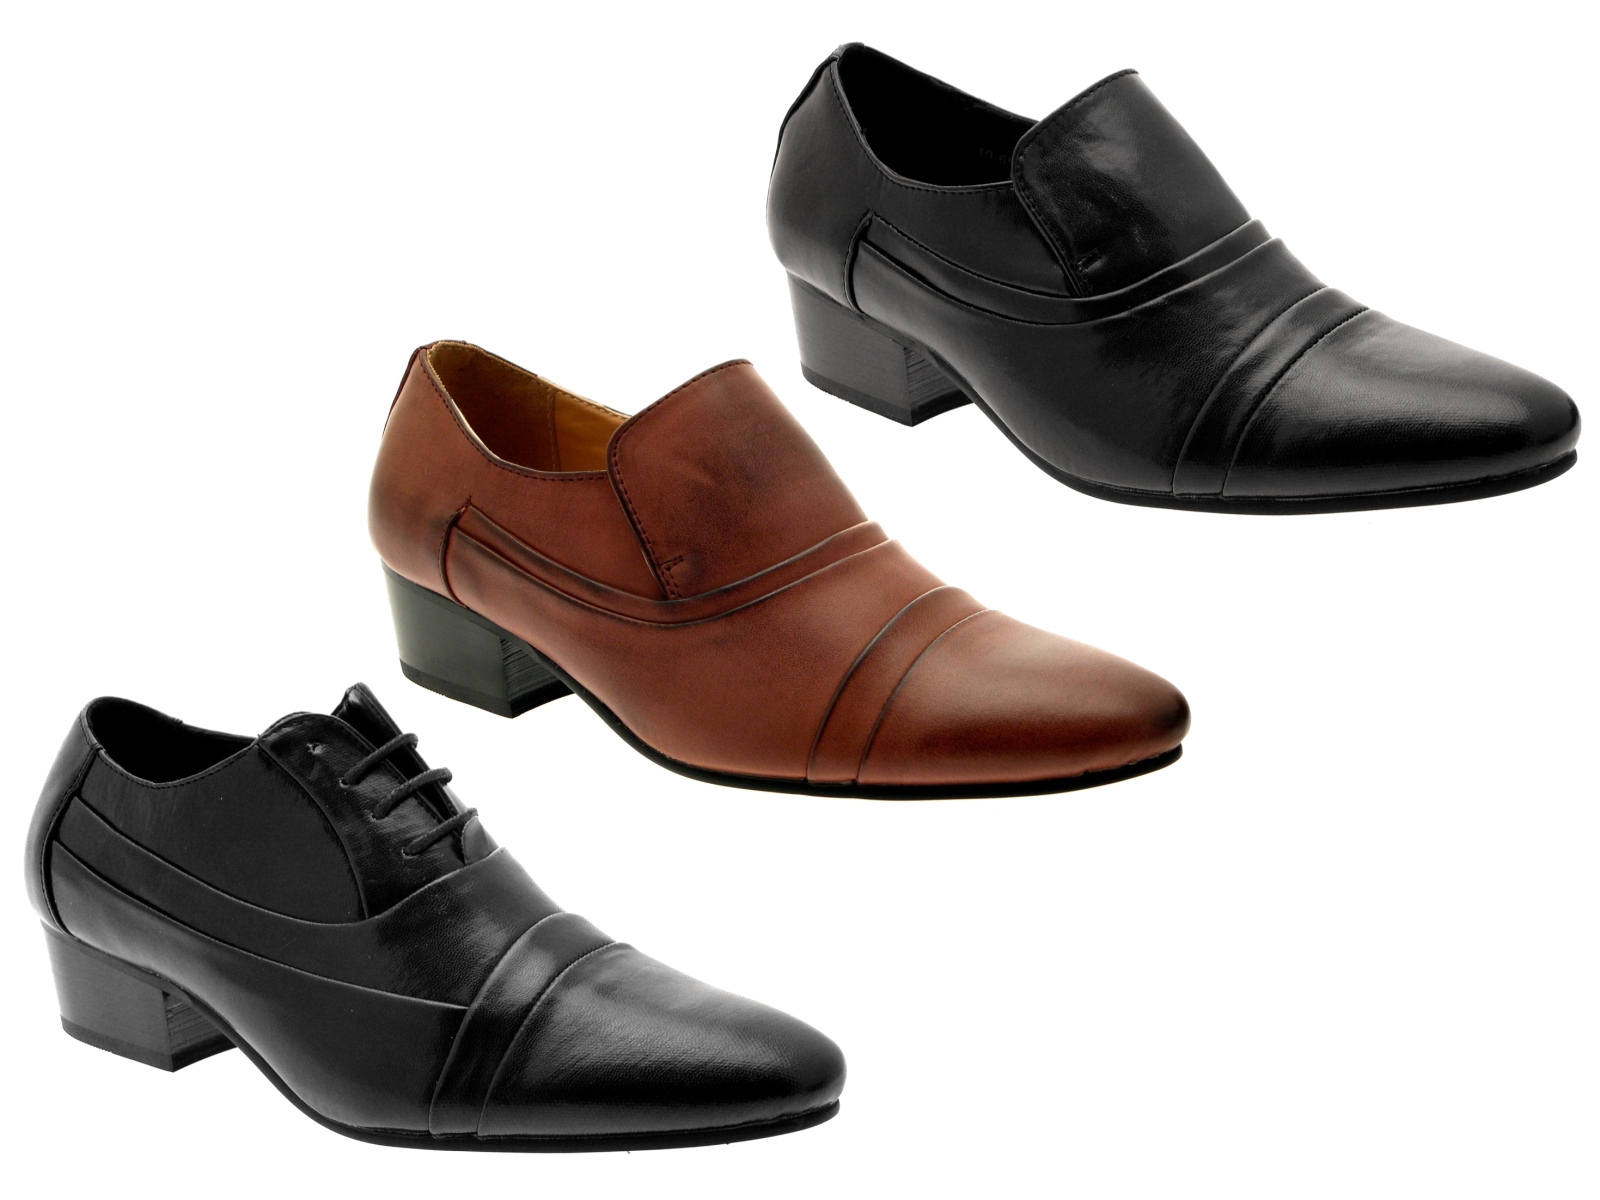 Details about MENS SMART CUBAN HEELS FORMAL WEDDING OFFICE SHOES SLIP ON LACE UP UK SIZE 6 11